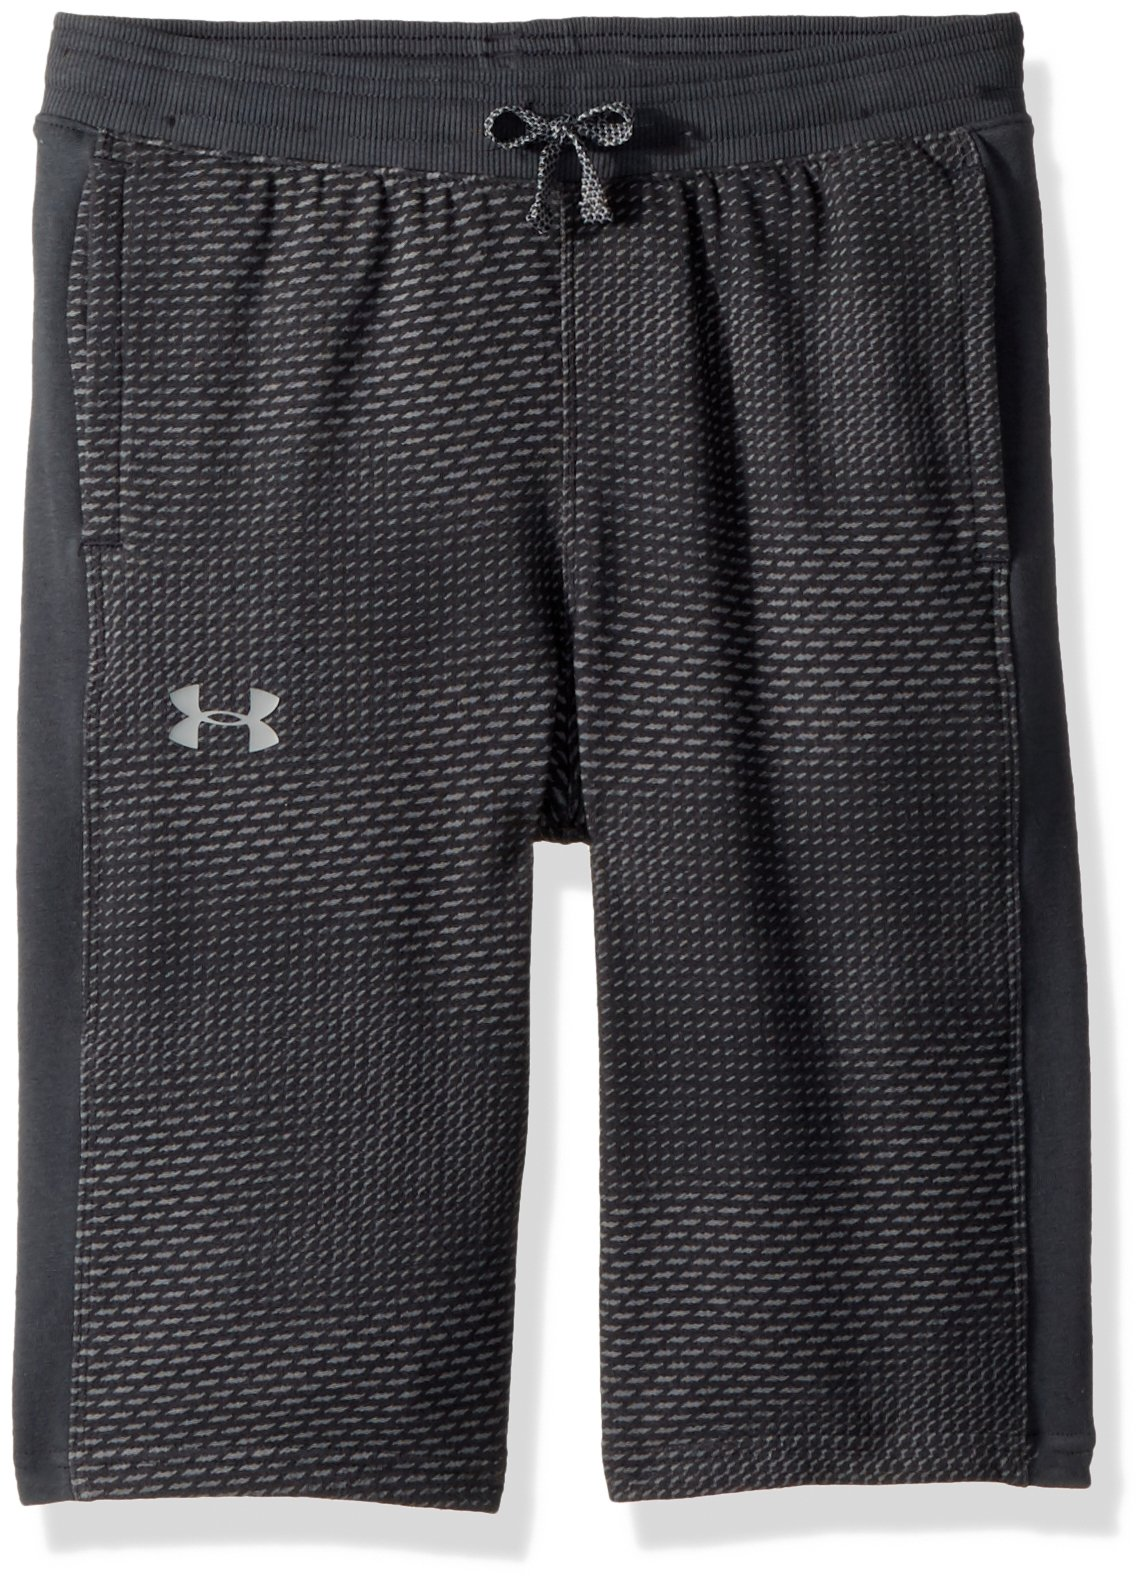 Under Armour Boys' Threadborne FT Shorts, Stealth Gray (008)/Neon Coral, Youth Small